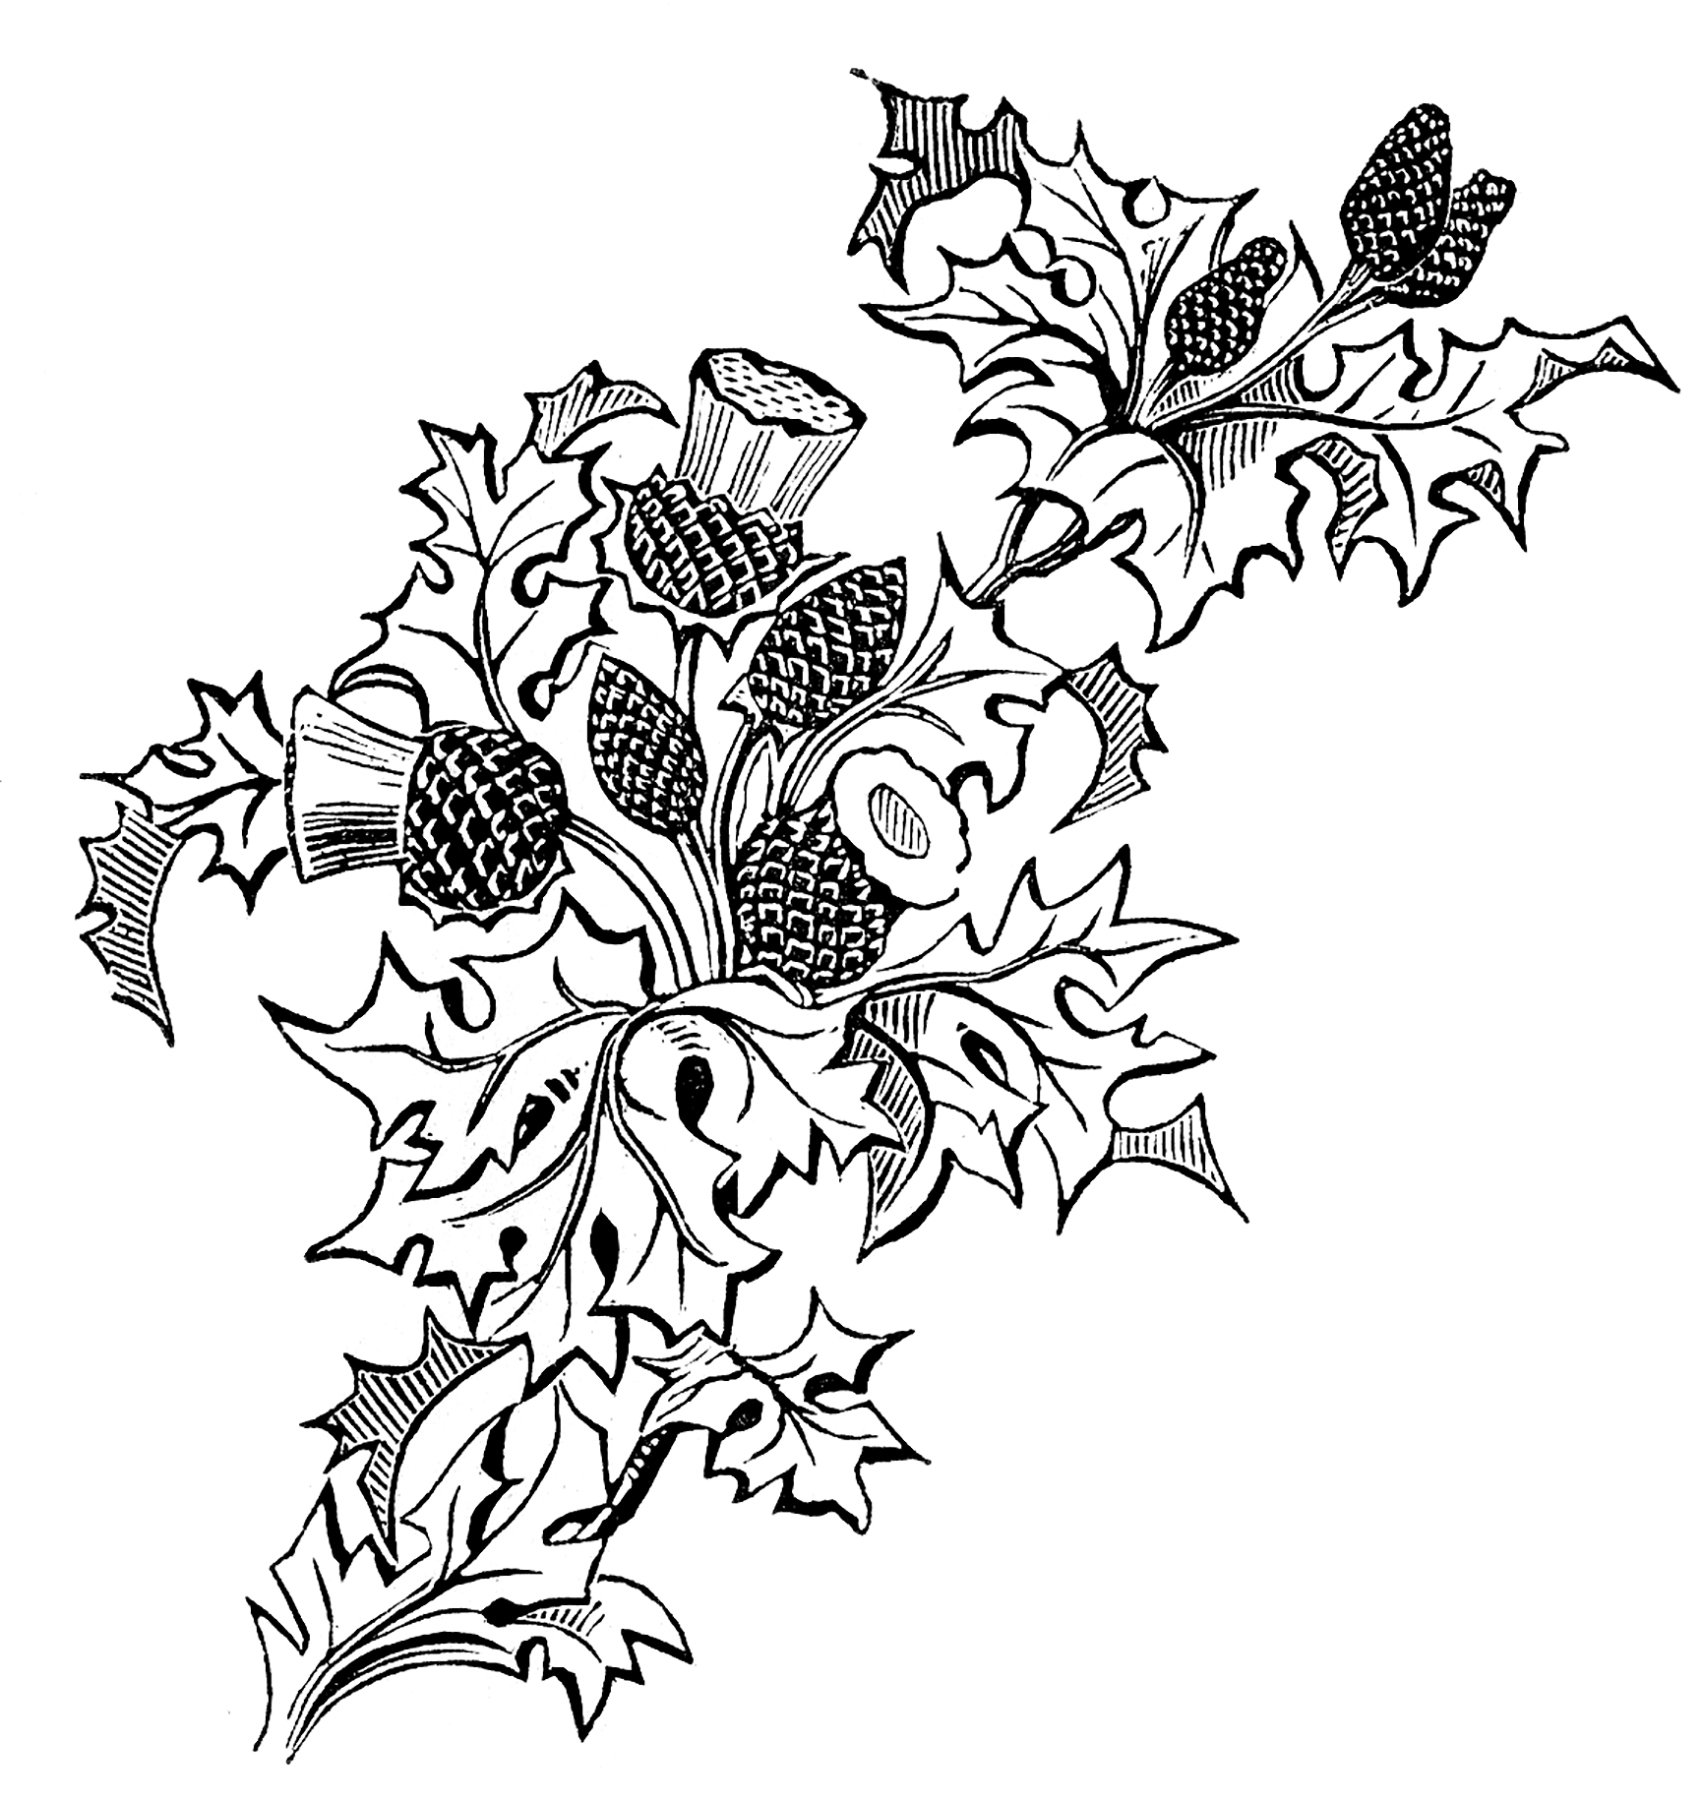 Line Drawing Embroidery : Thistle line drawing pixshark images galleries